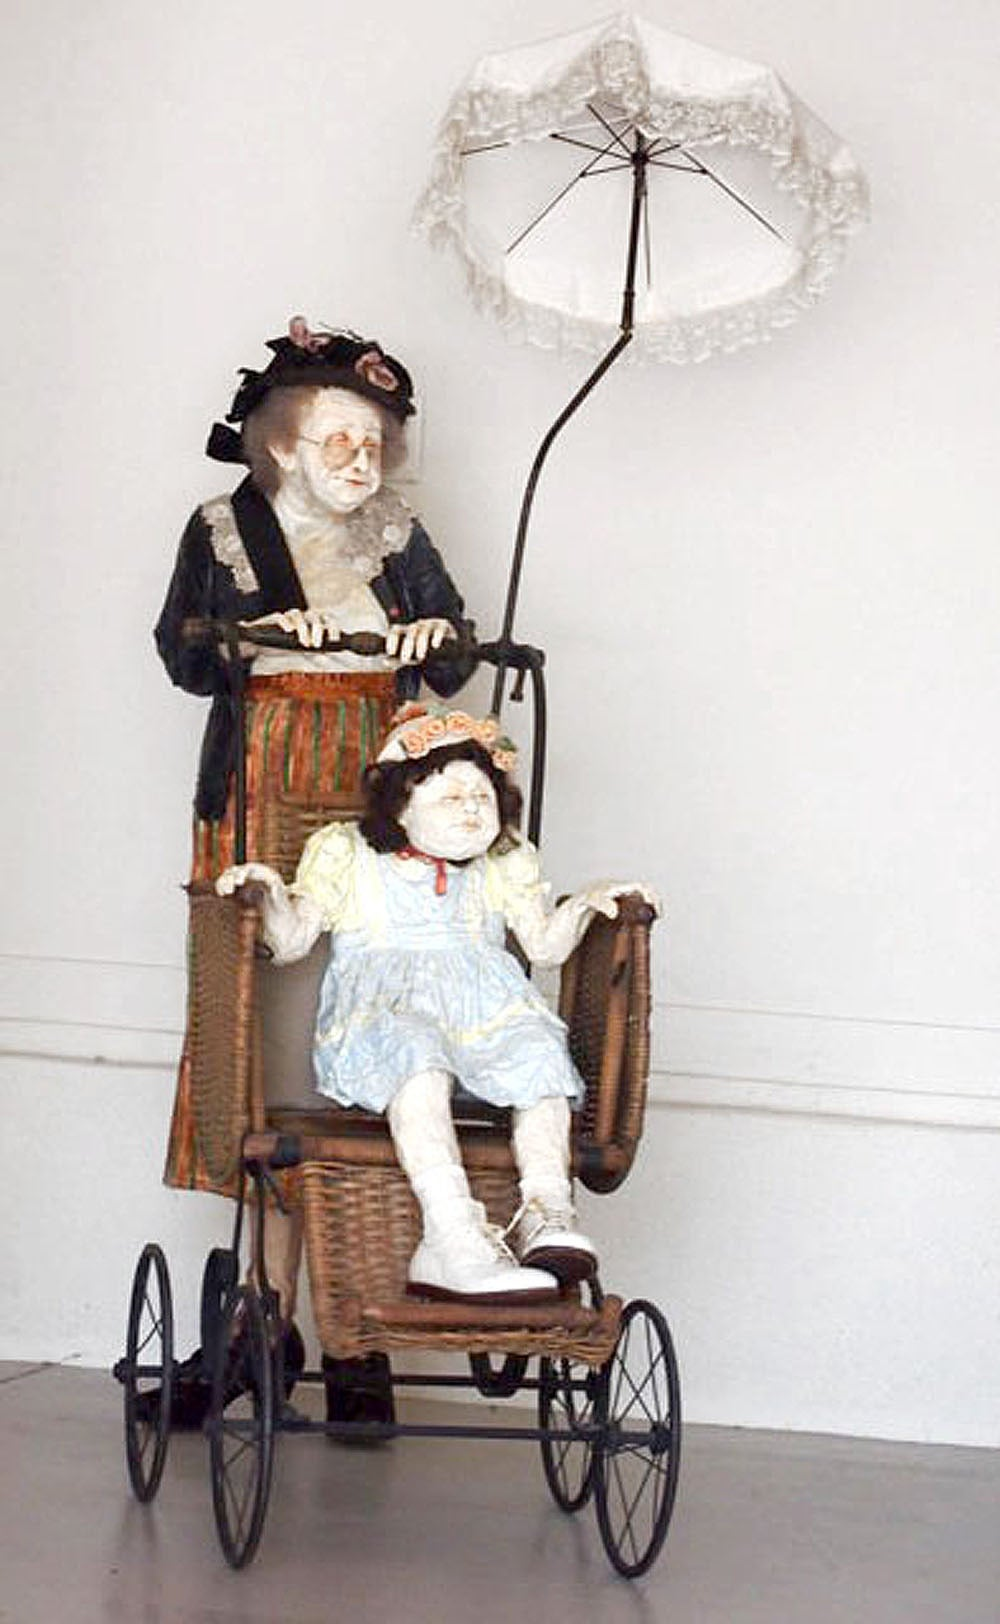 Kay Ritter Figurative Sculpture - Nanny with Stroller